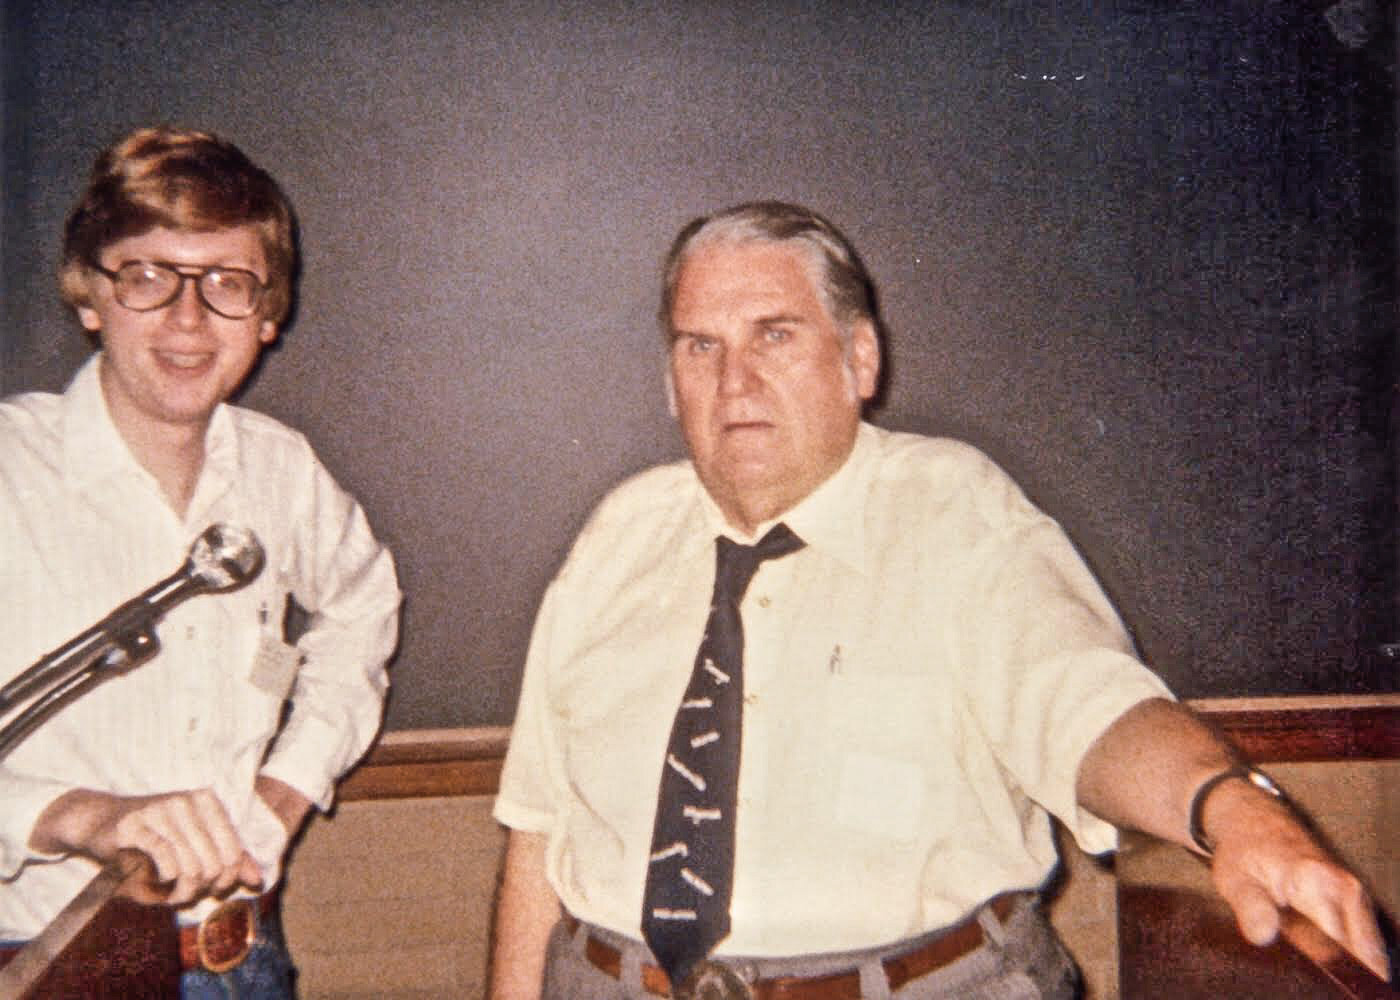 Betzner & Shaw - at the Duquesne Workshop that set Ray Betzner on his way to a life with Sherlock Holmes.